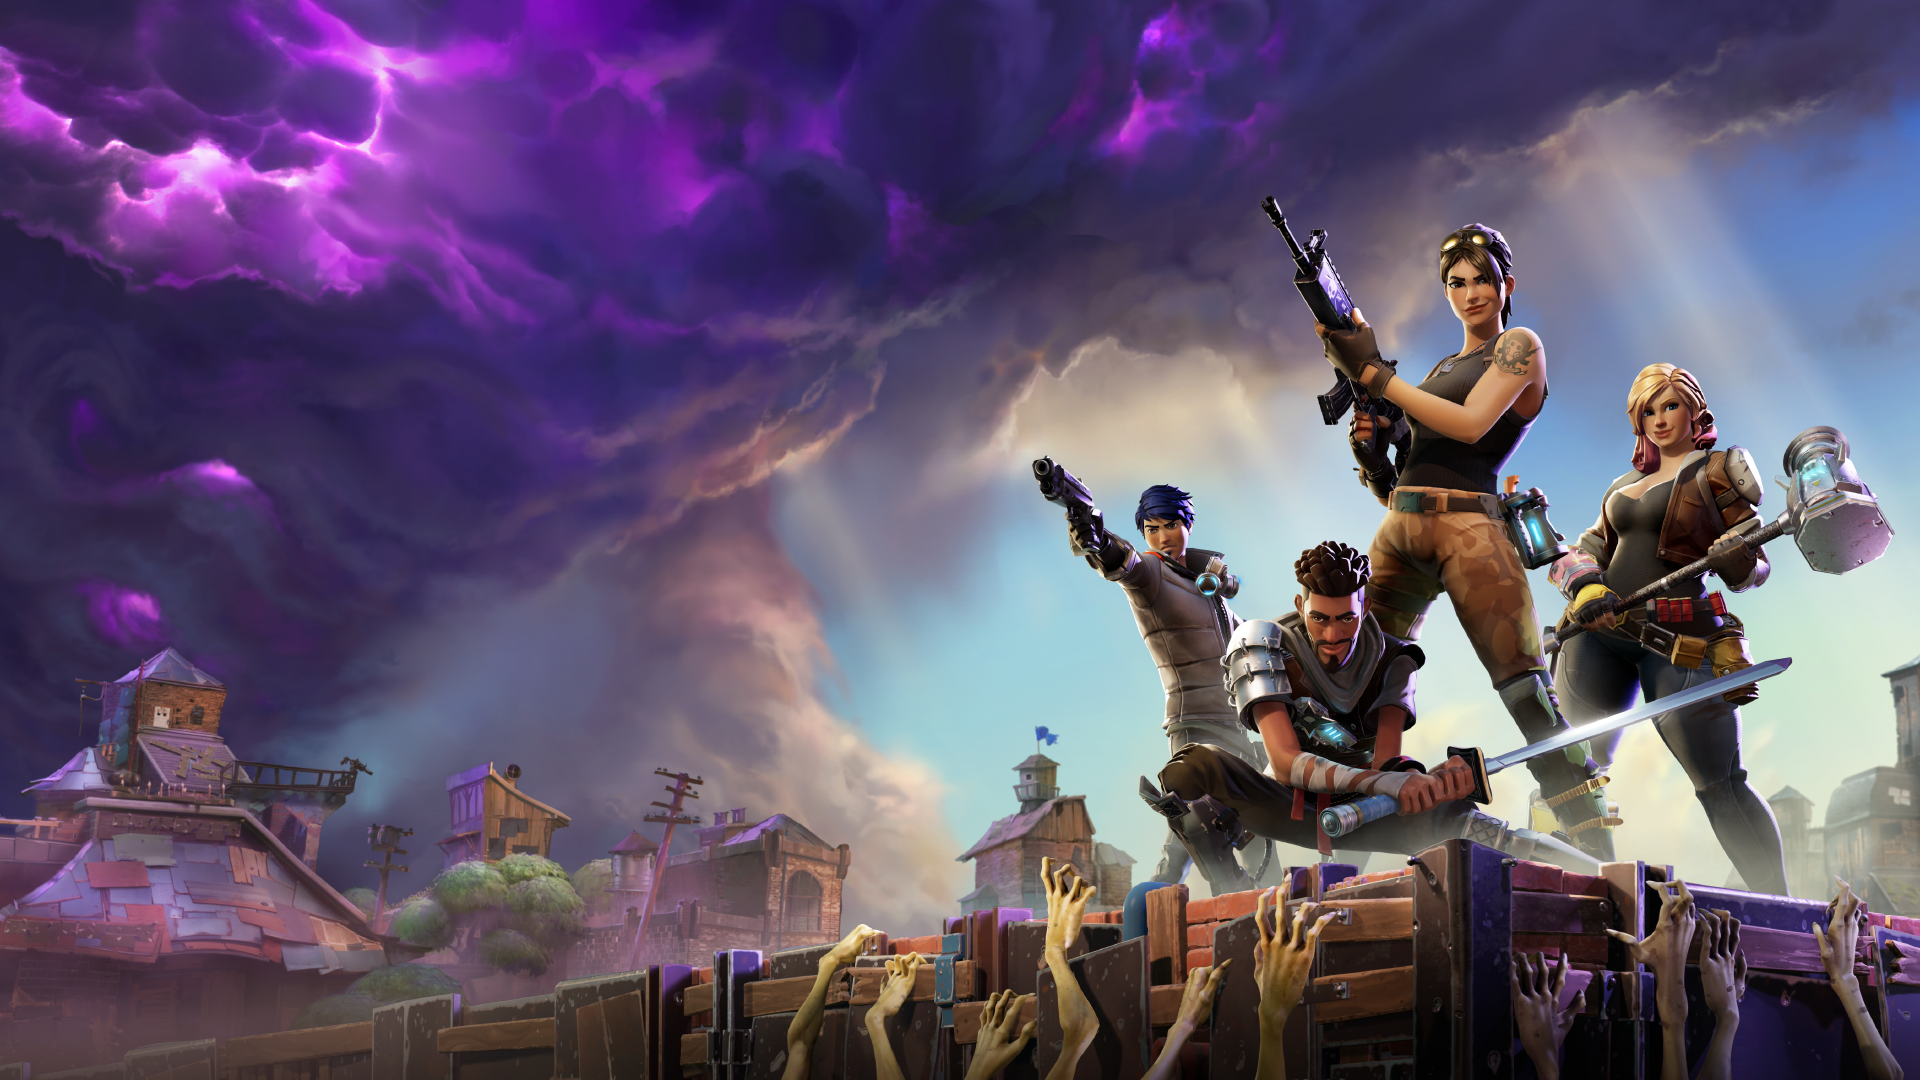 Fortnite: Code of Conduct